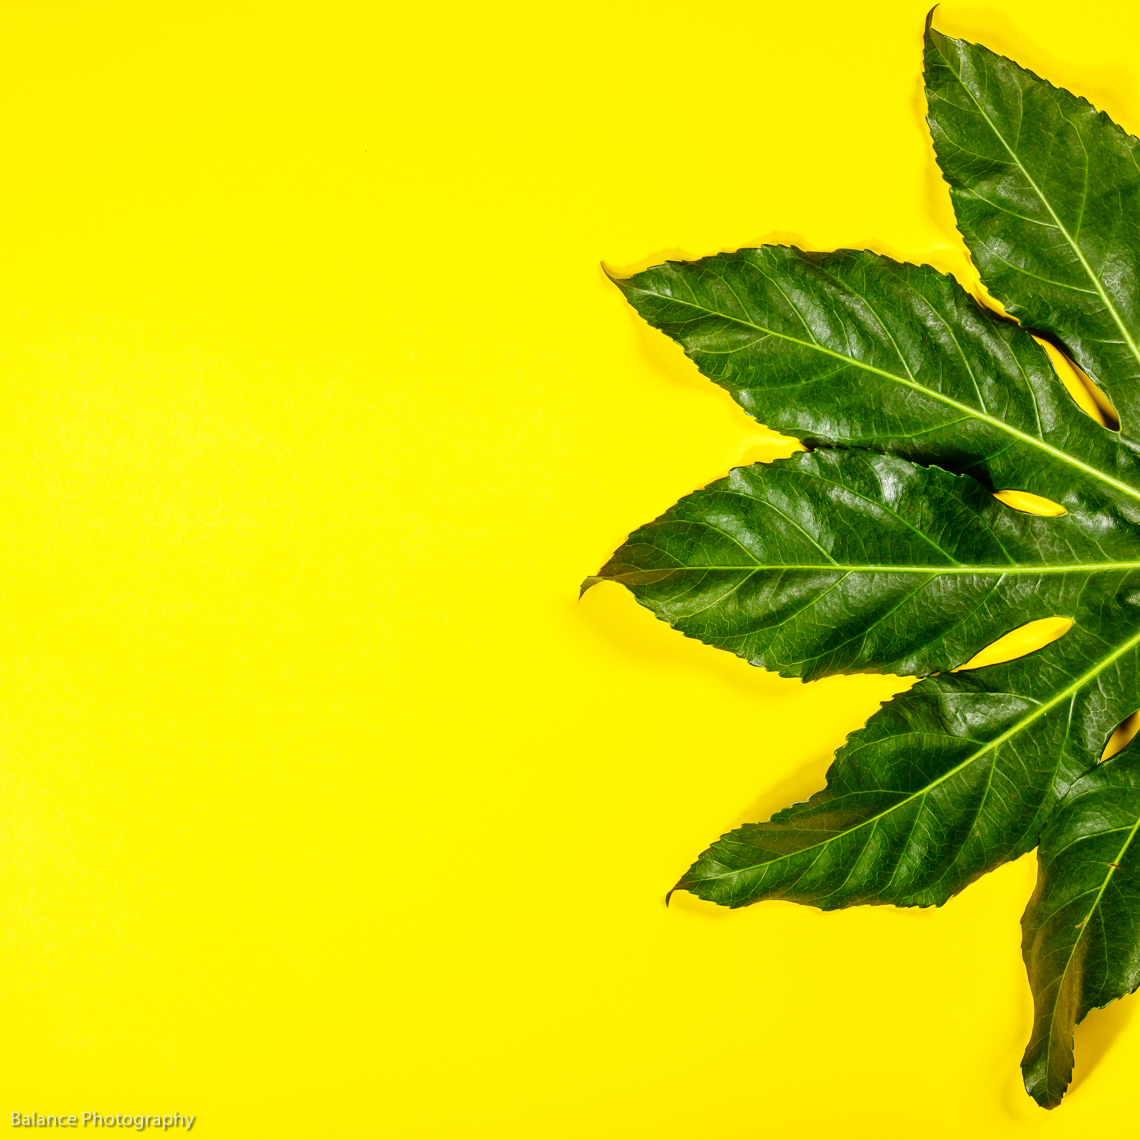 pf_tropical-leaves-on-yellow-background-XTCAF7S